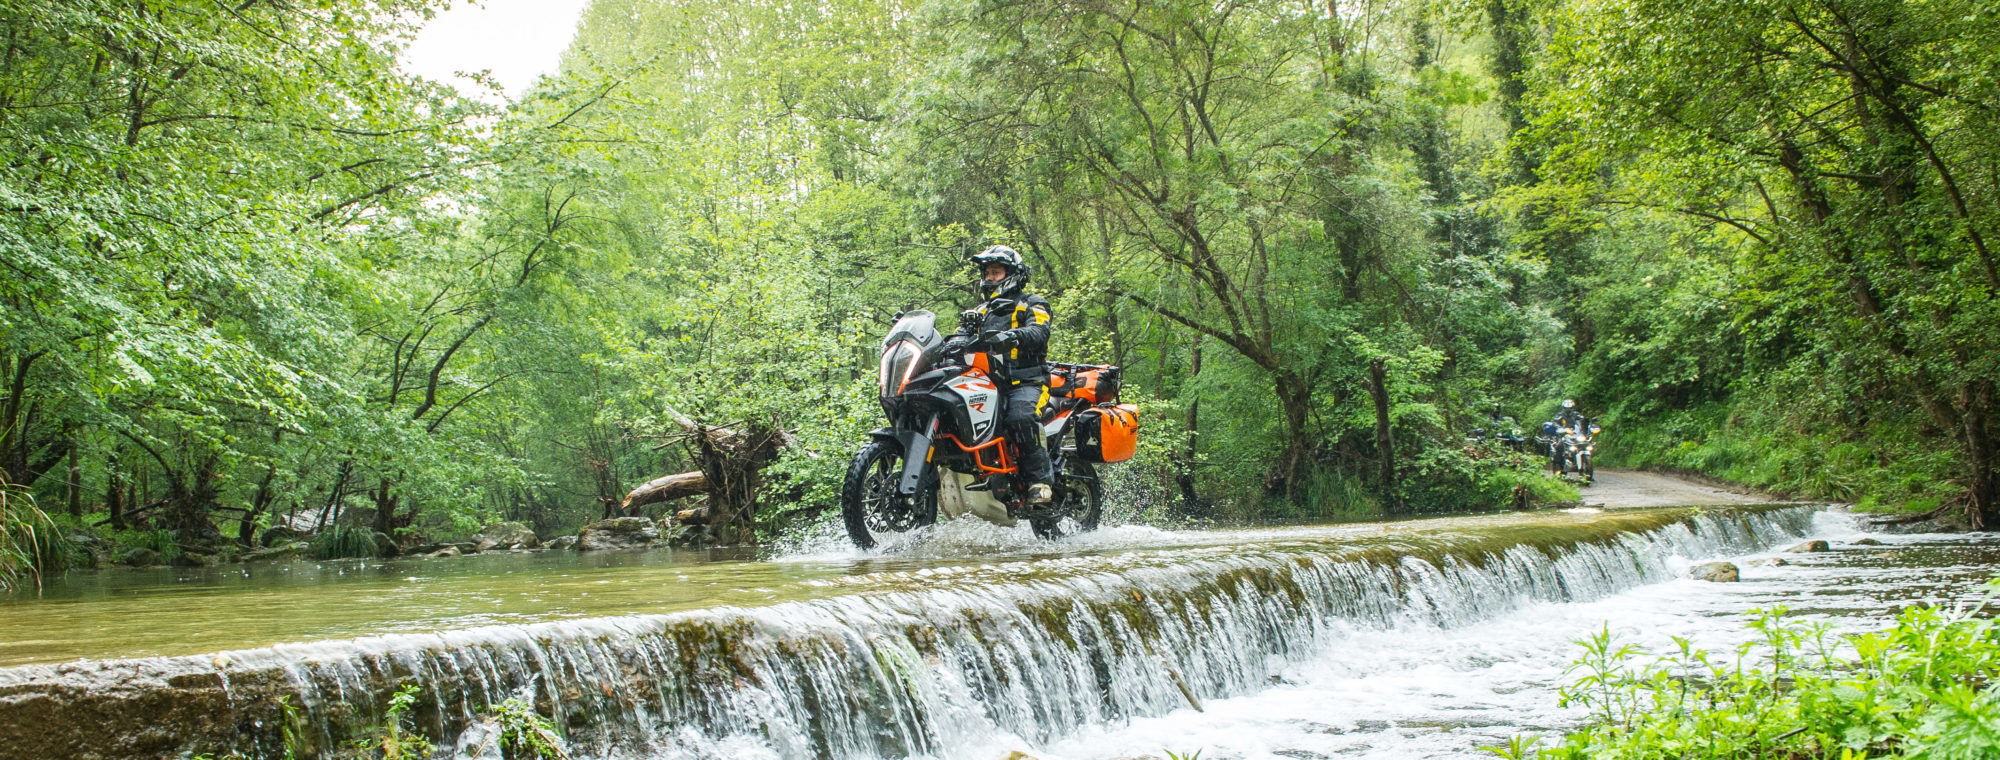 KTM y Touratech